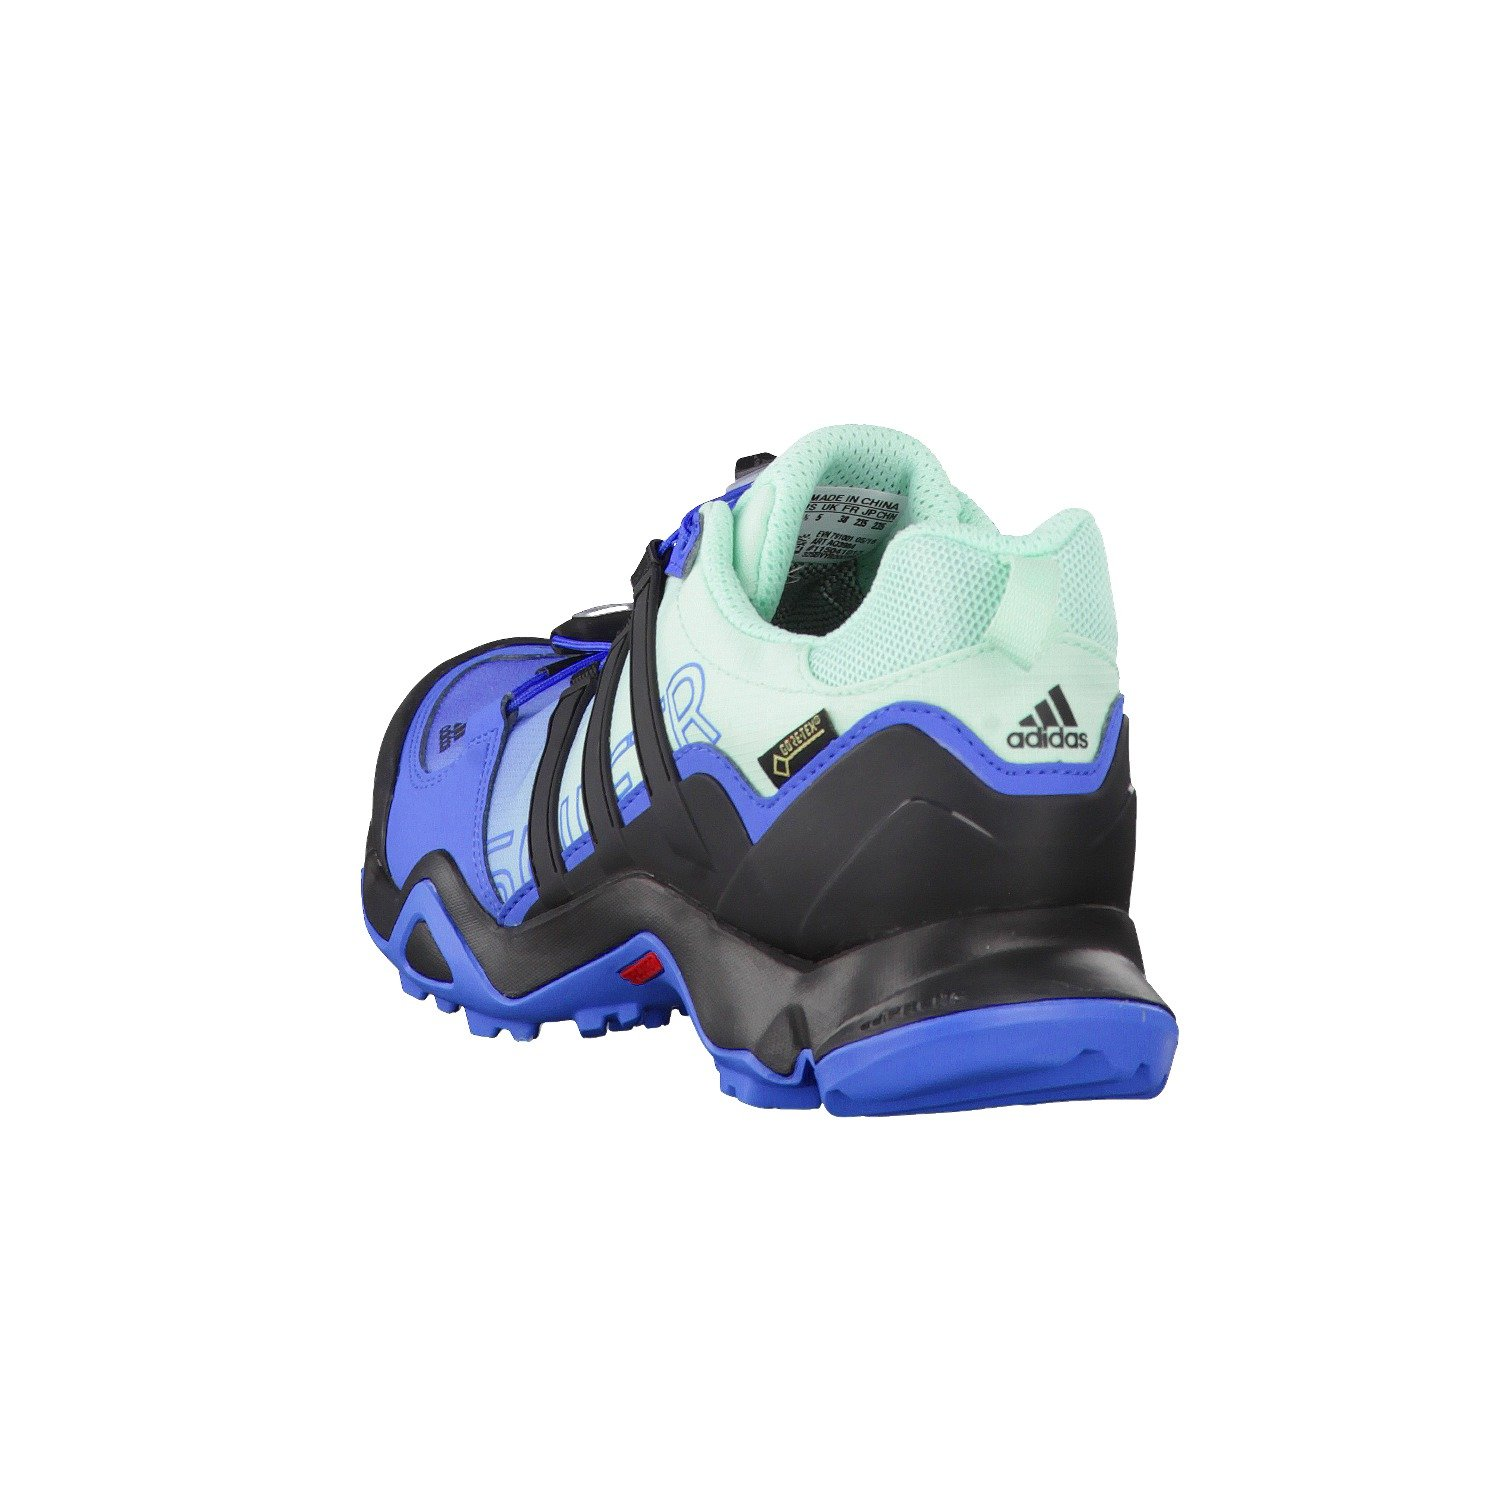 reputable site 9d2f7 be0e3 adidas Terrex Swift R GTX W - Sneakers Hiking for Women, 38, Blue   Amazon.co.uk  Shoes   Bags